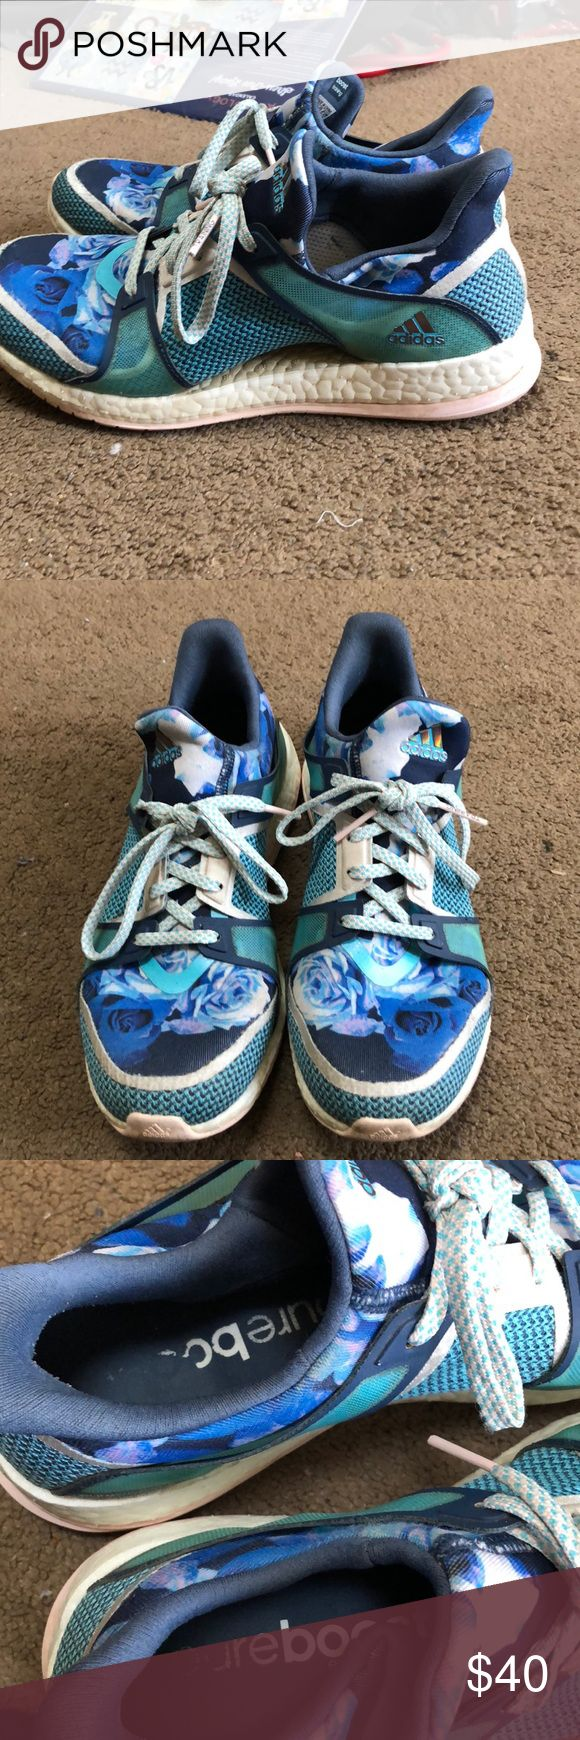 Adidas Pure Boost X size 8.5 Have been worn on maybe 3 hikes so there is some wear. Blue with roses. I wear a 7.5 and they are a little big, would fit a 7.5 or 8. adidas Shoes Athletic Shoes